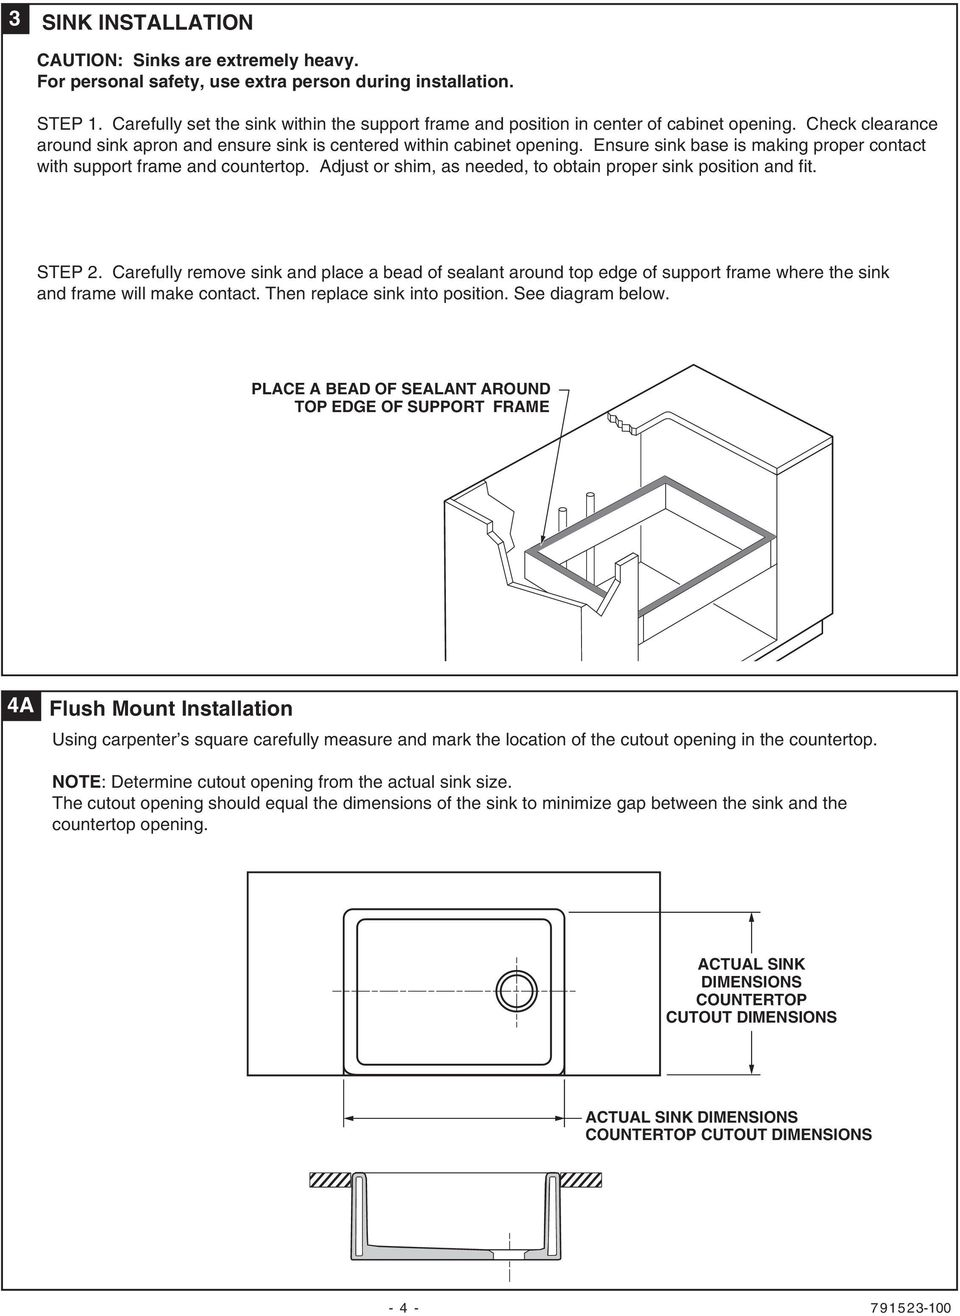 Ensure sink base is making proper contact with support frame and countertop. Adjust or shim, as needed, to obtain proper sink position and fit. STEP 2.